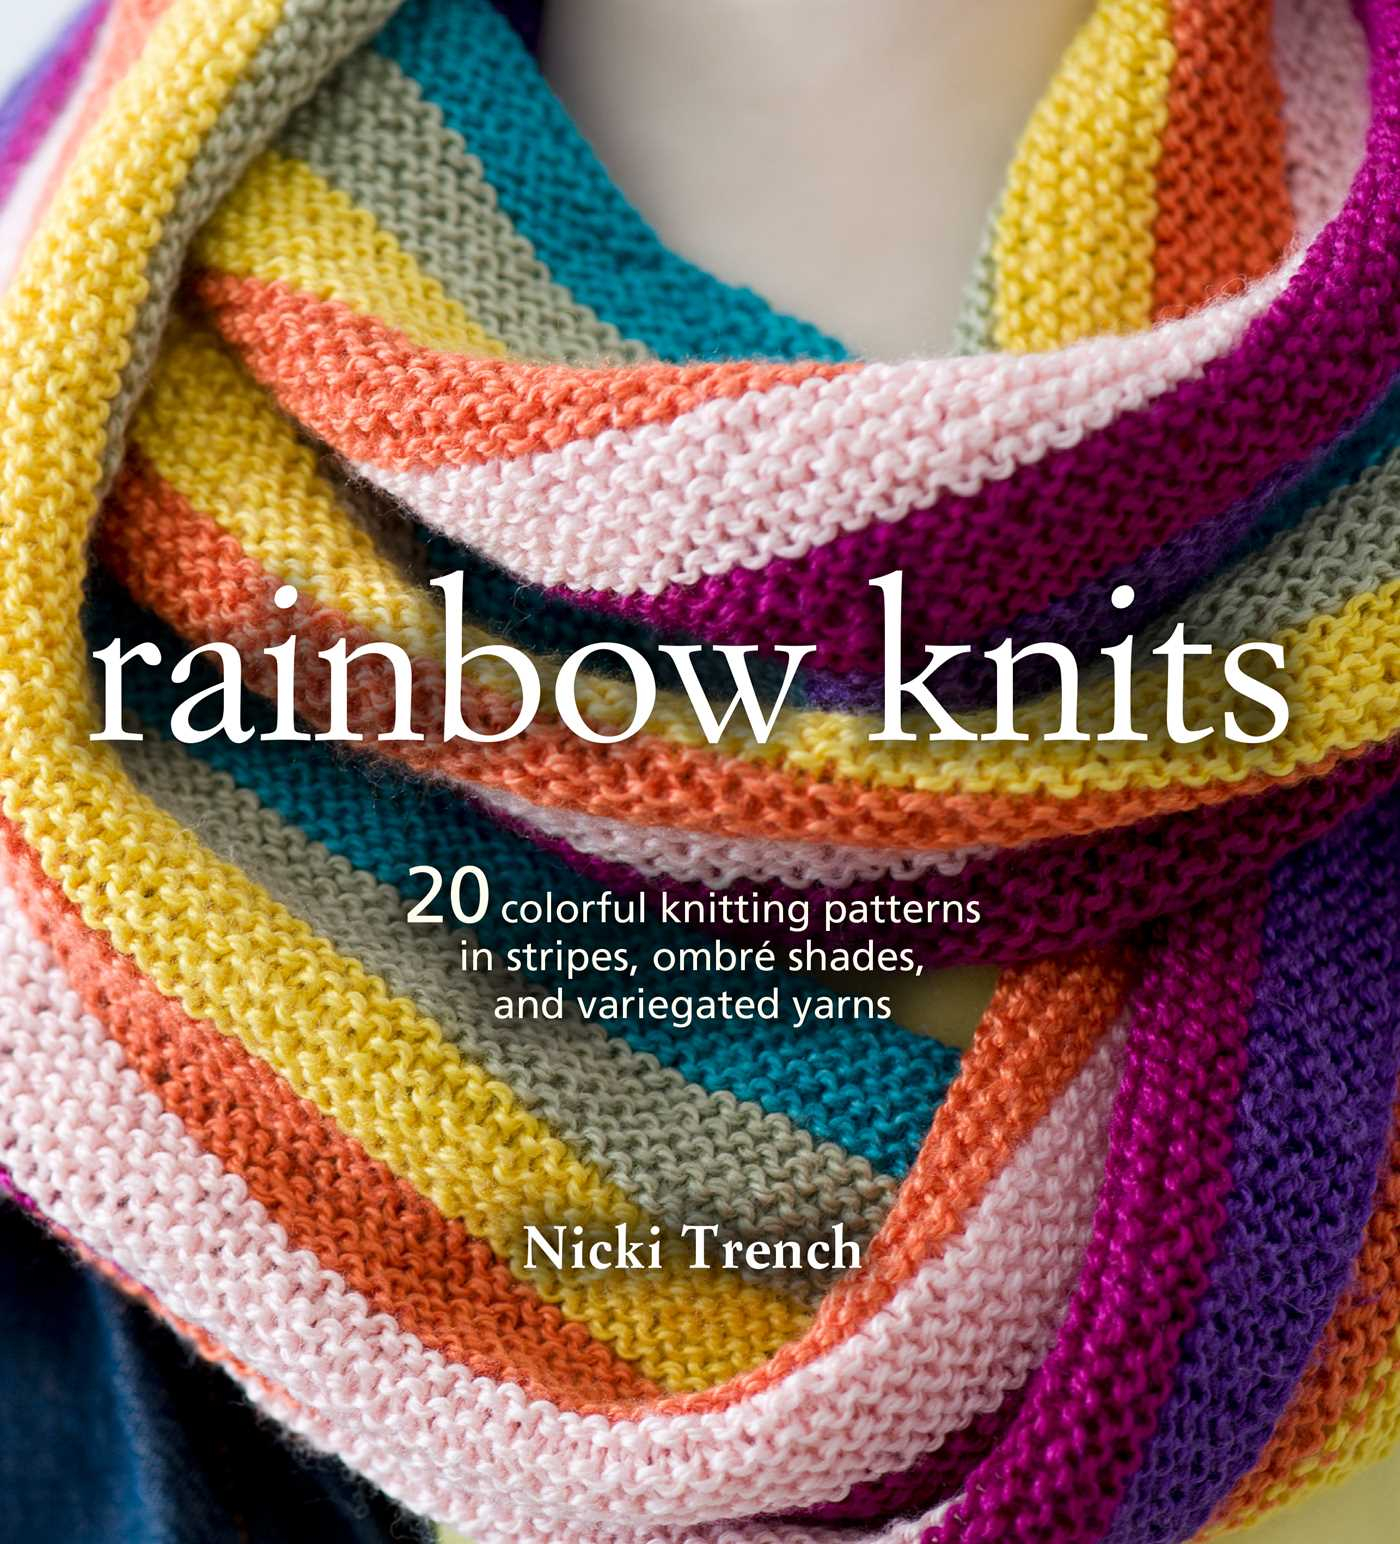 Variegated Yarn Patterns Knitting Rainbow Knits Book Nicki Trench Official Publisher Page